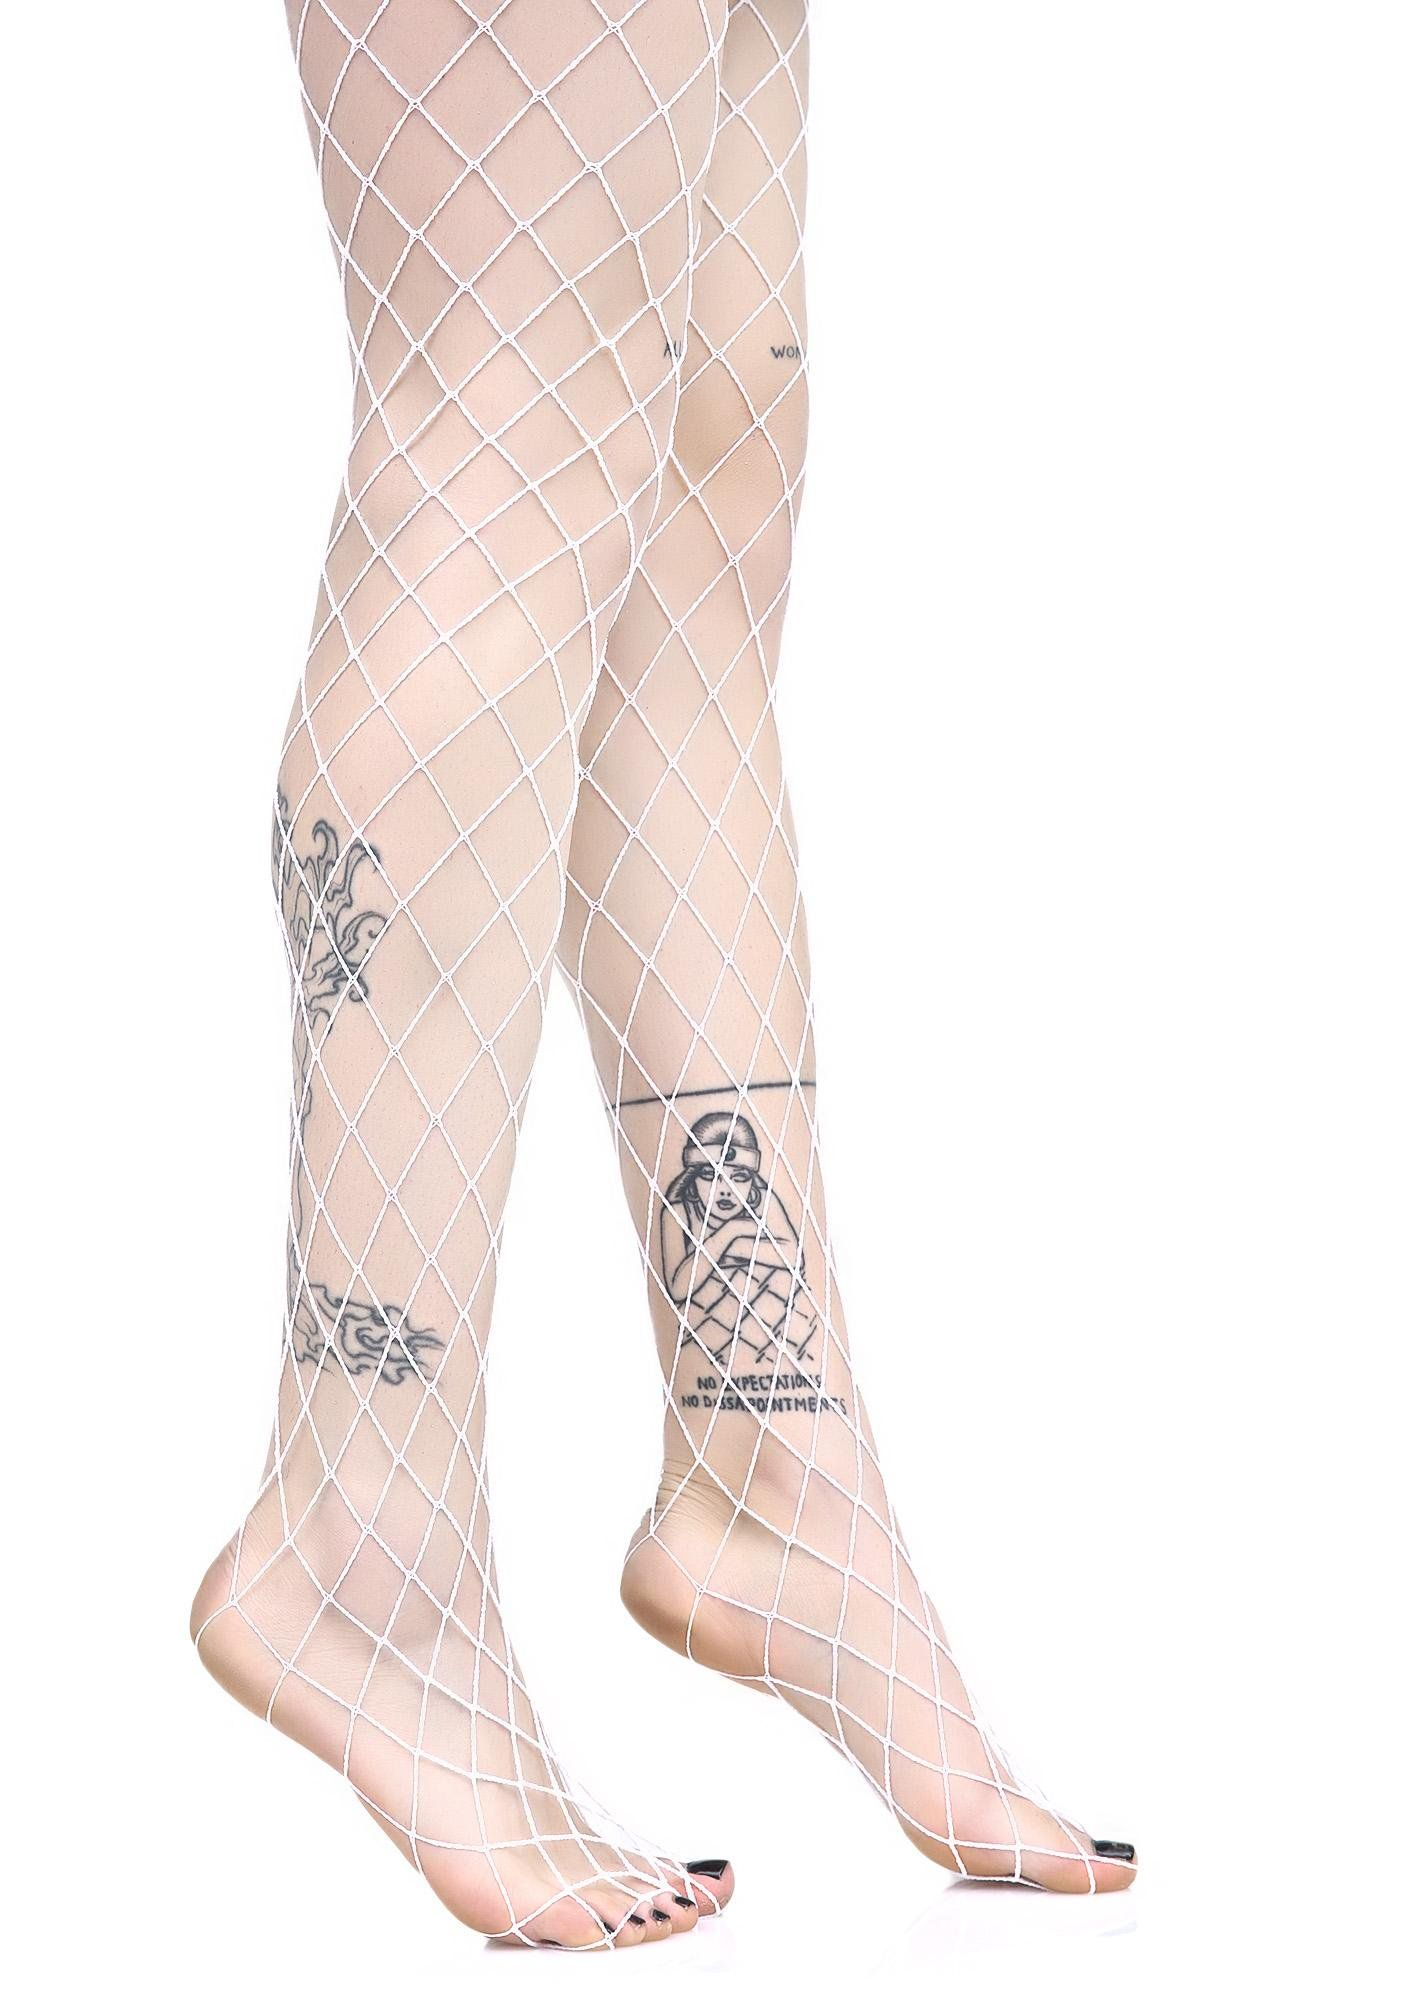 635f5fec3379b Ice Diamond Doll Fishnet Stockings no one can dull yer shine, bb. These  fishnets feature a large diamond design and a stretchy white nylon  construction.